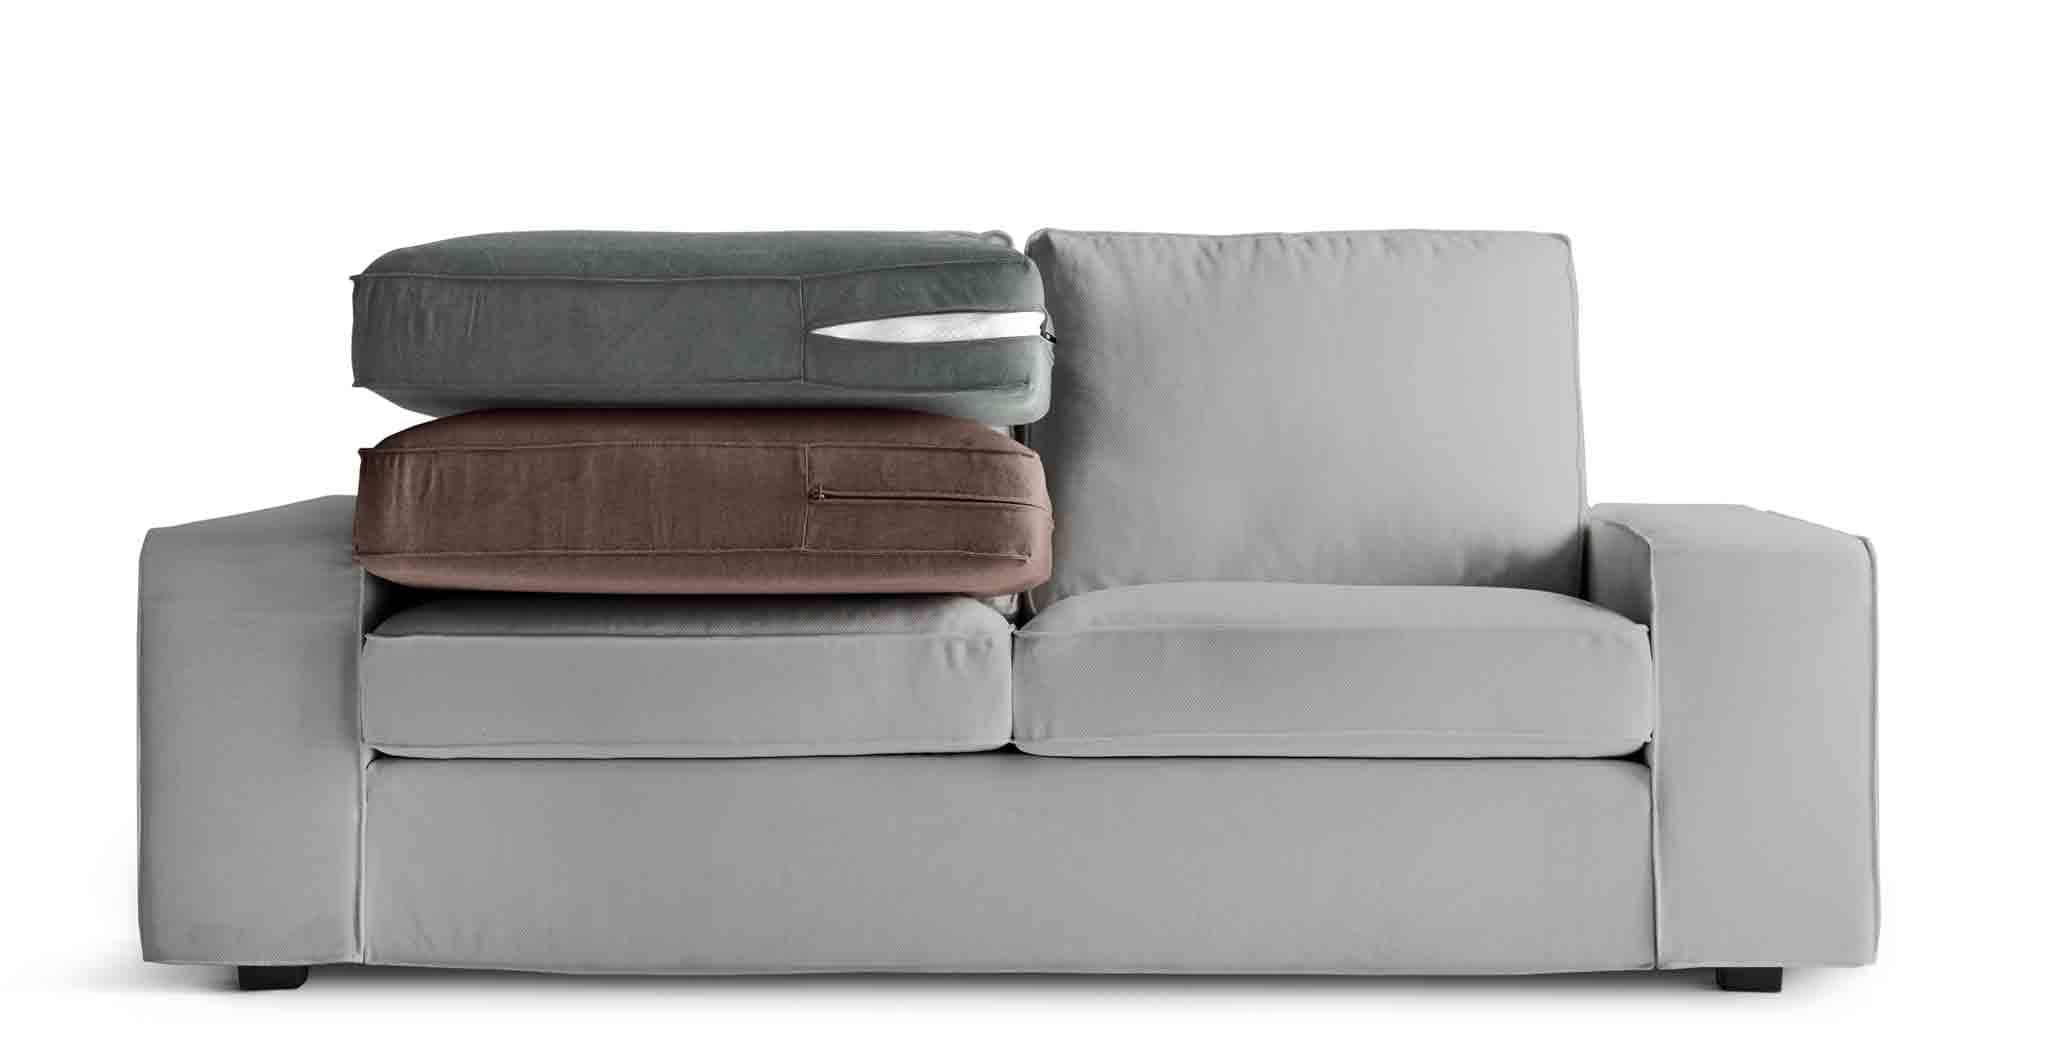 Ikea Pertaining To Covers For Sofas And Chairs (View 17 of 20)